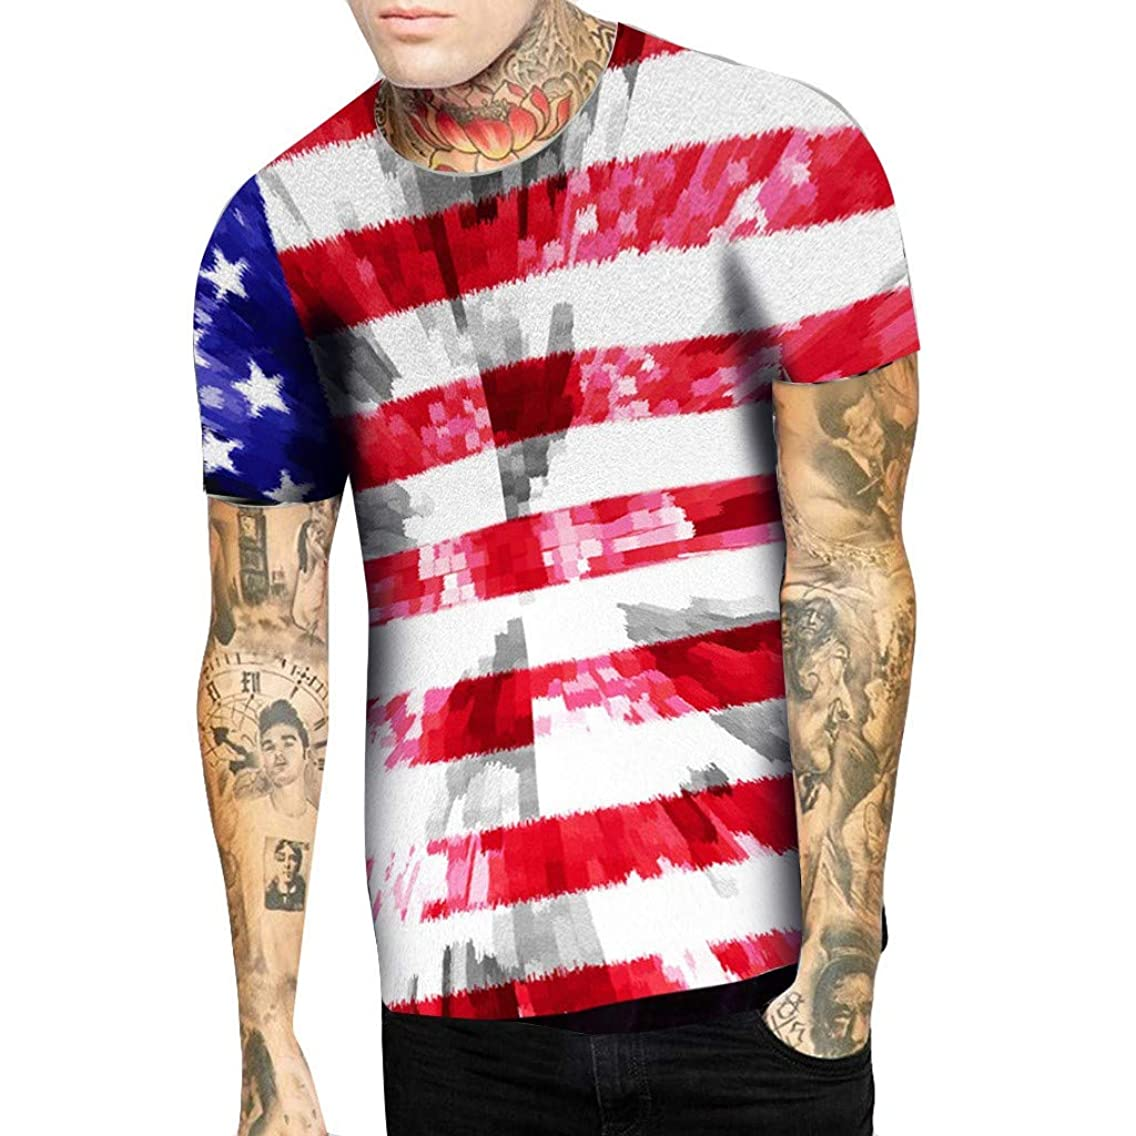 YOMXL Men's USA Flag T-Shirt Vintage Shirts Hipster Short Sleeve Crew Neck Tee Tops Independence Day T Shirt dchgayc27